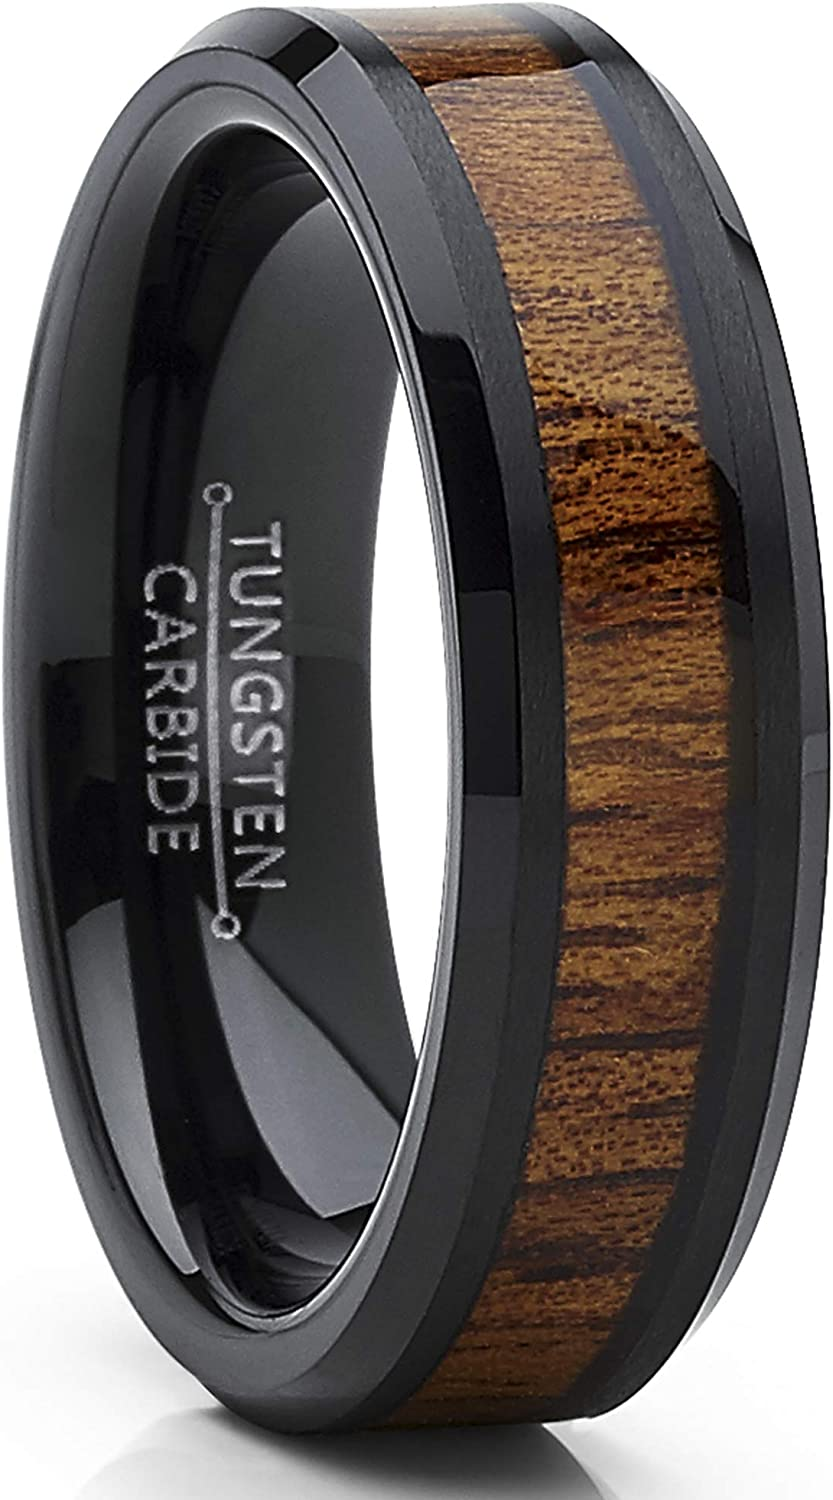 Metal Masters Co. Black Tungsten Carbide Wedding Band Ring, Real Koa Wood Inlay Men's Women's 6mm